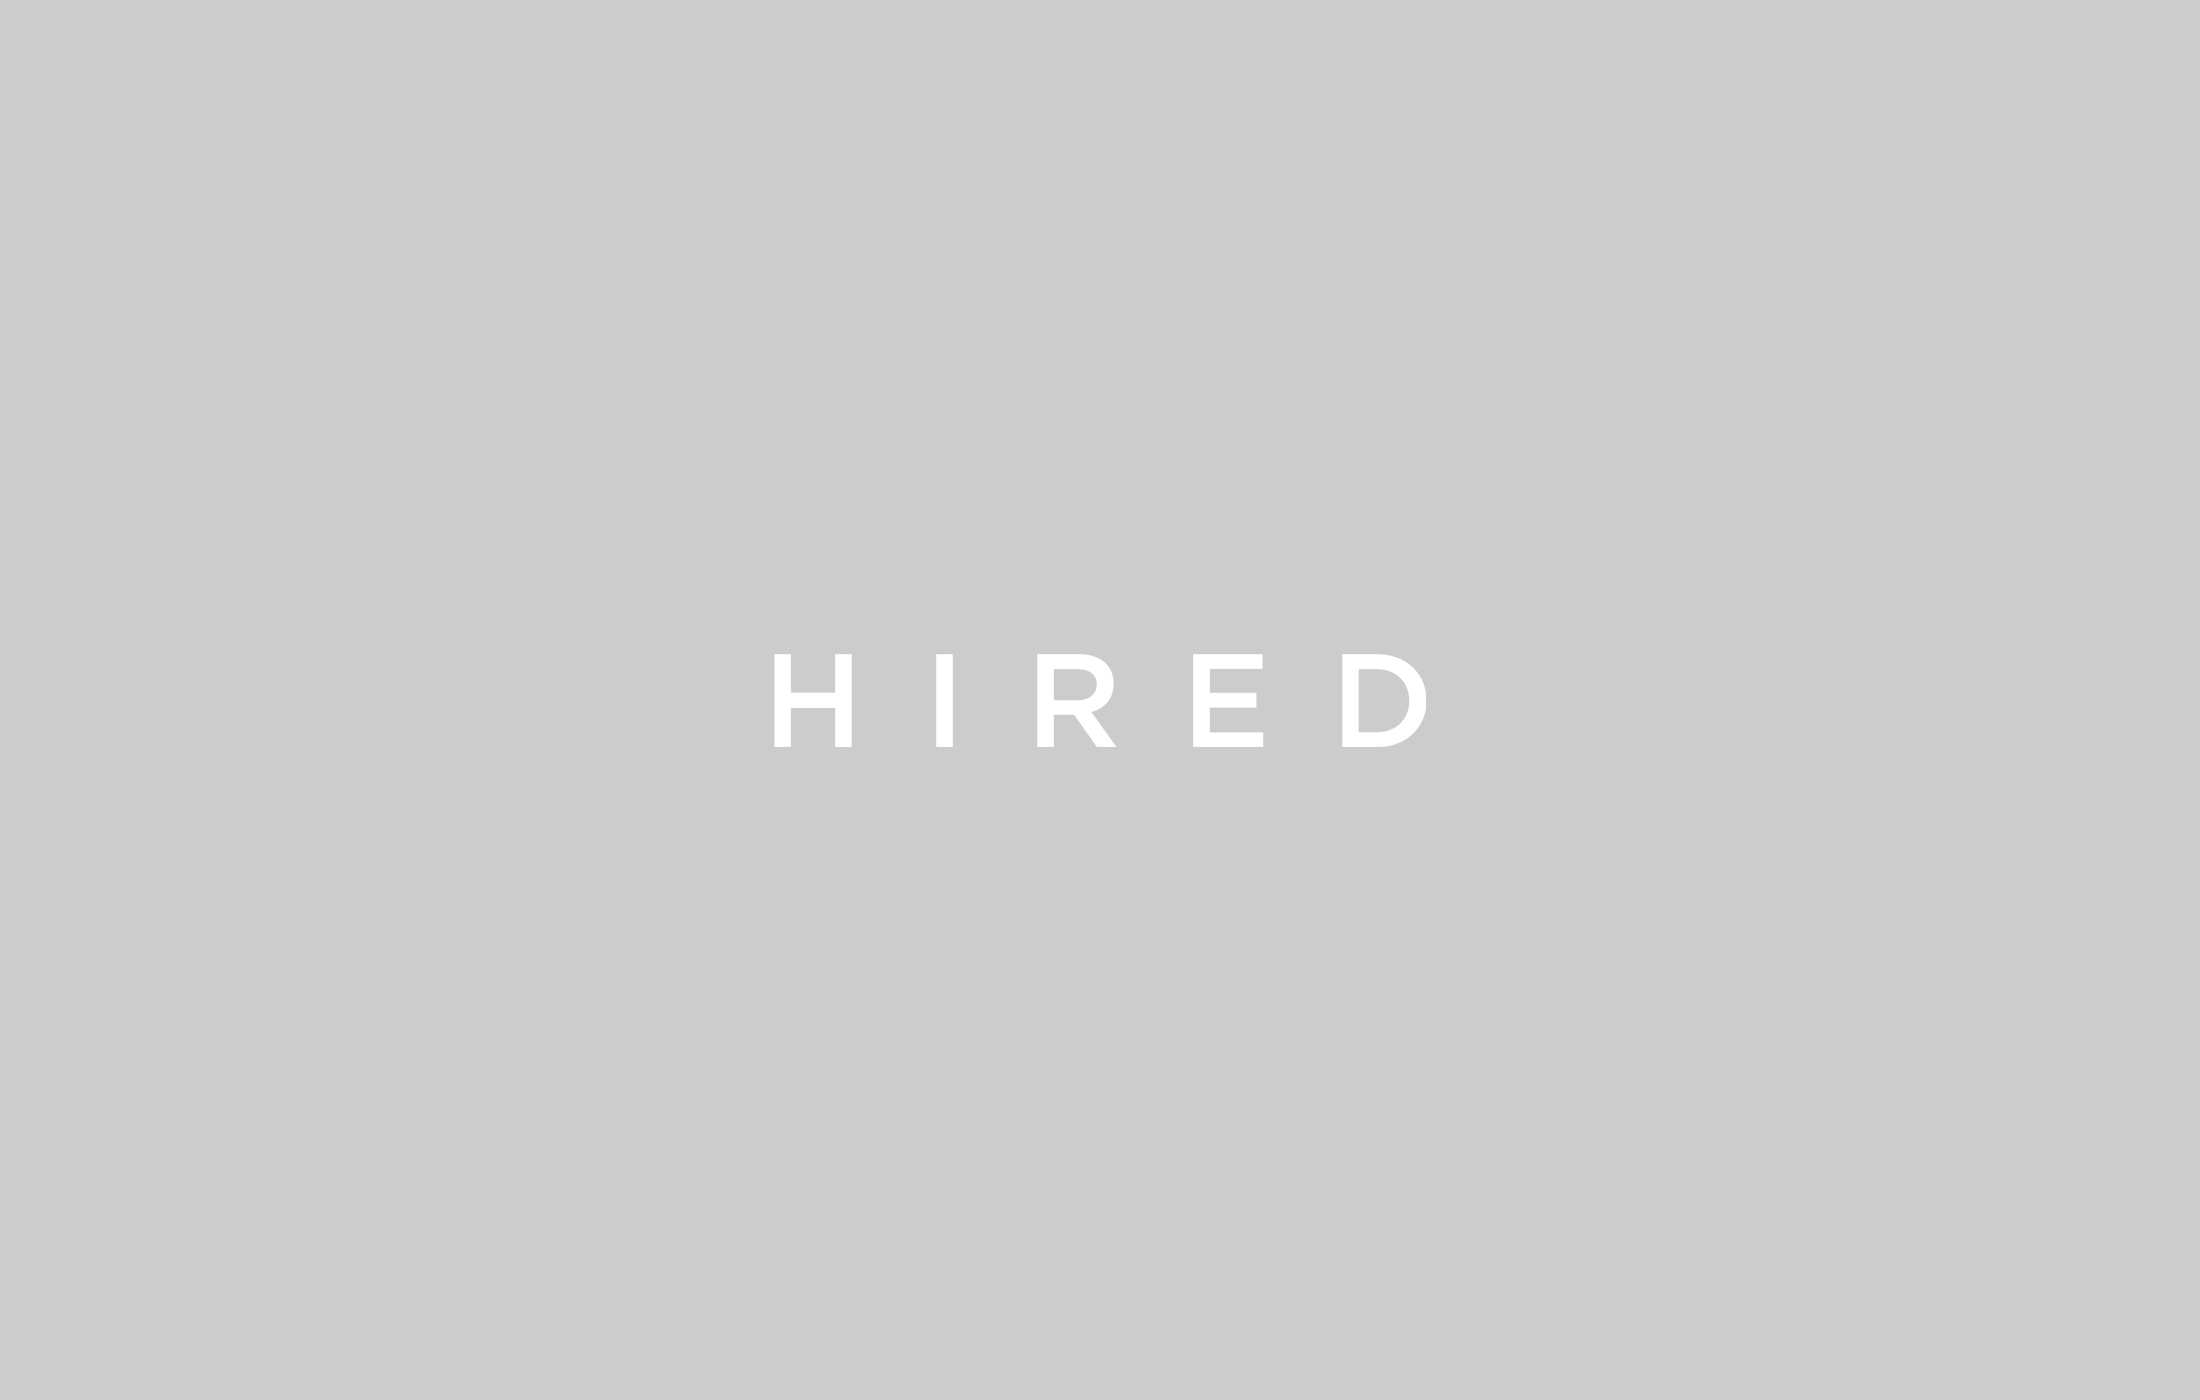 hired-launches-in-chicago-with-over-5000-applicants-and-125-companies